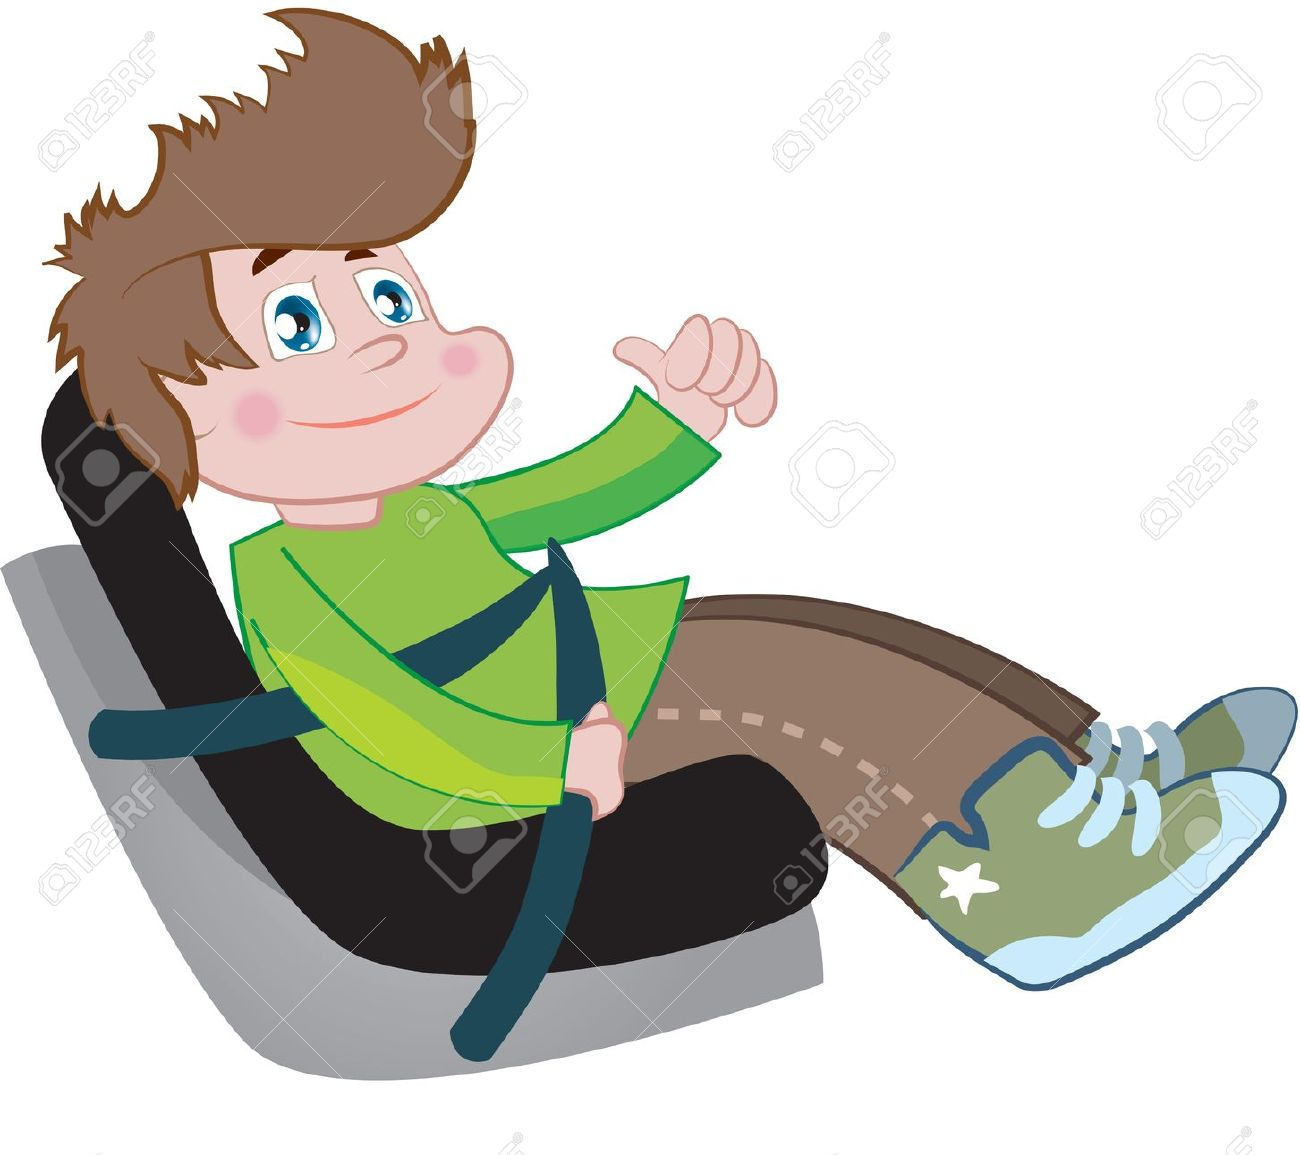 Kid on car seat clipart.